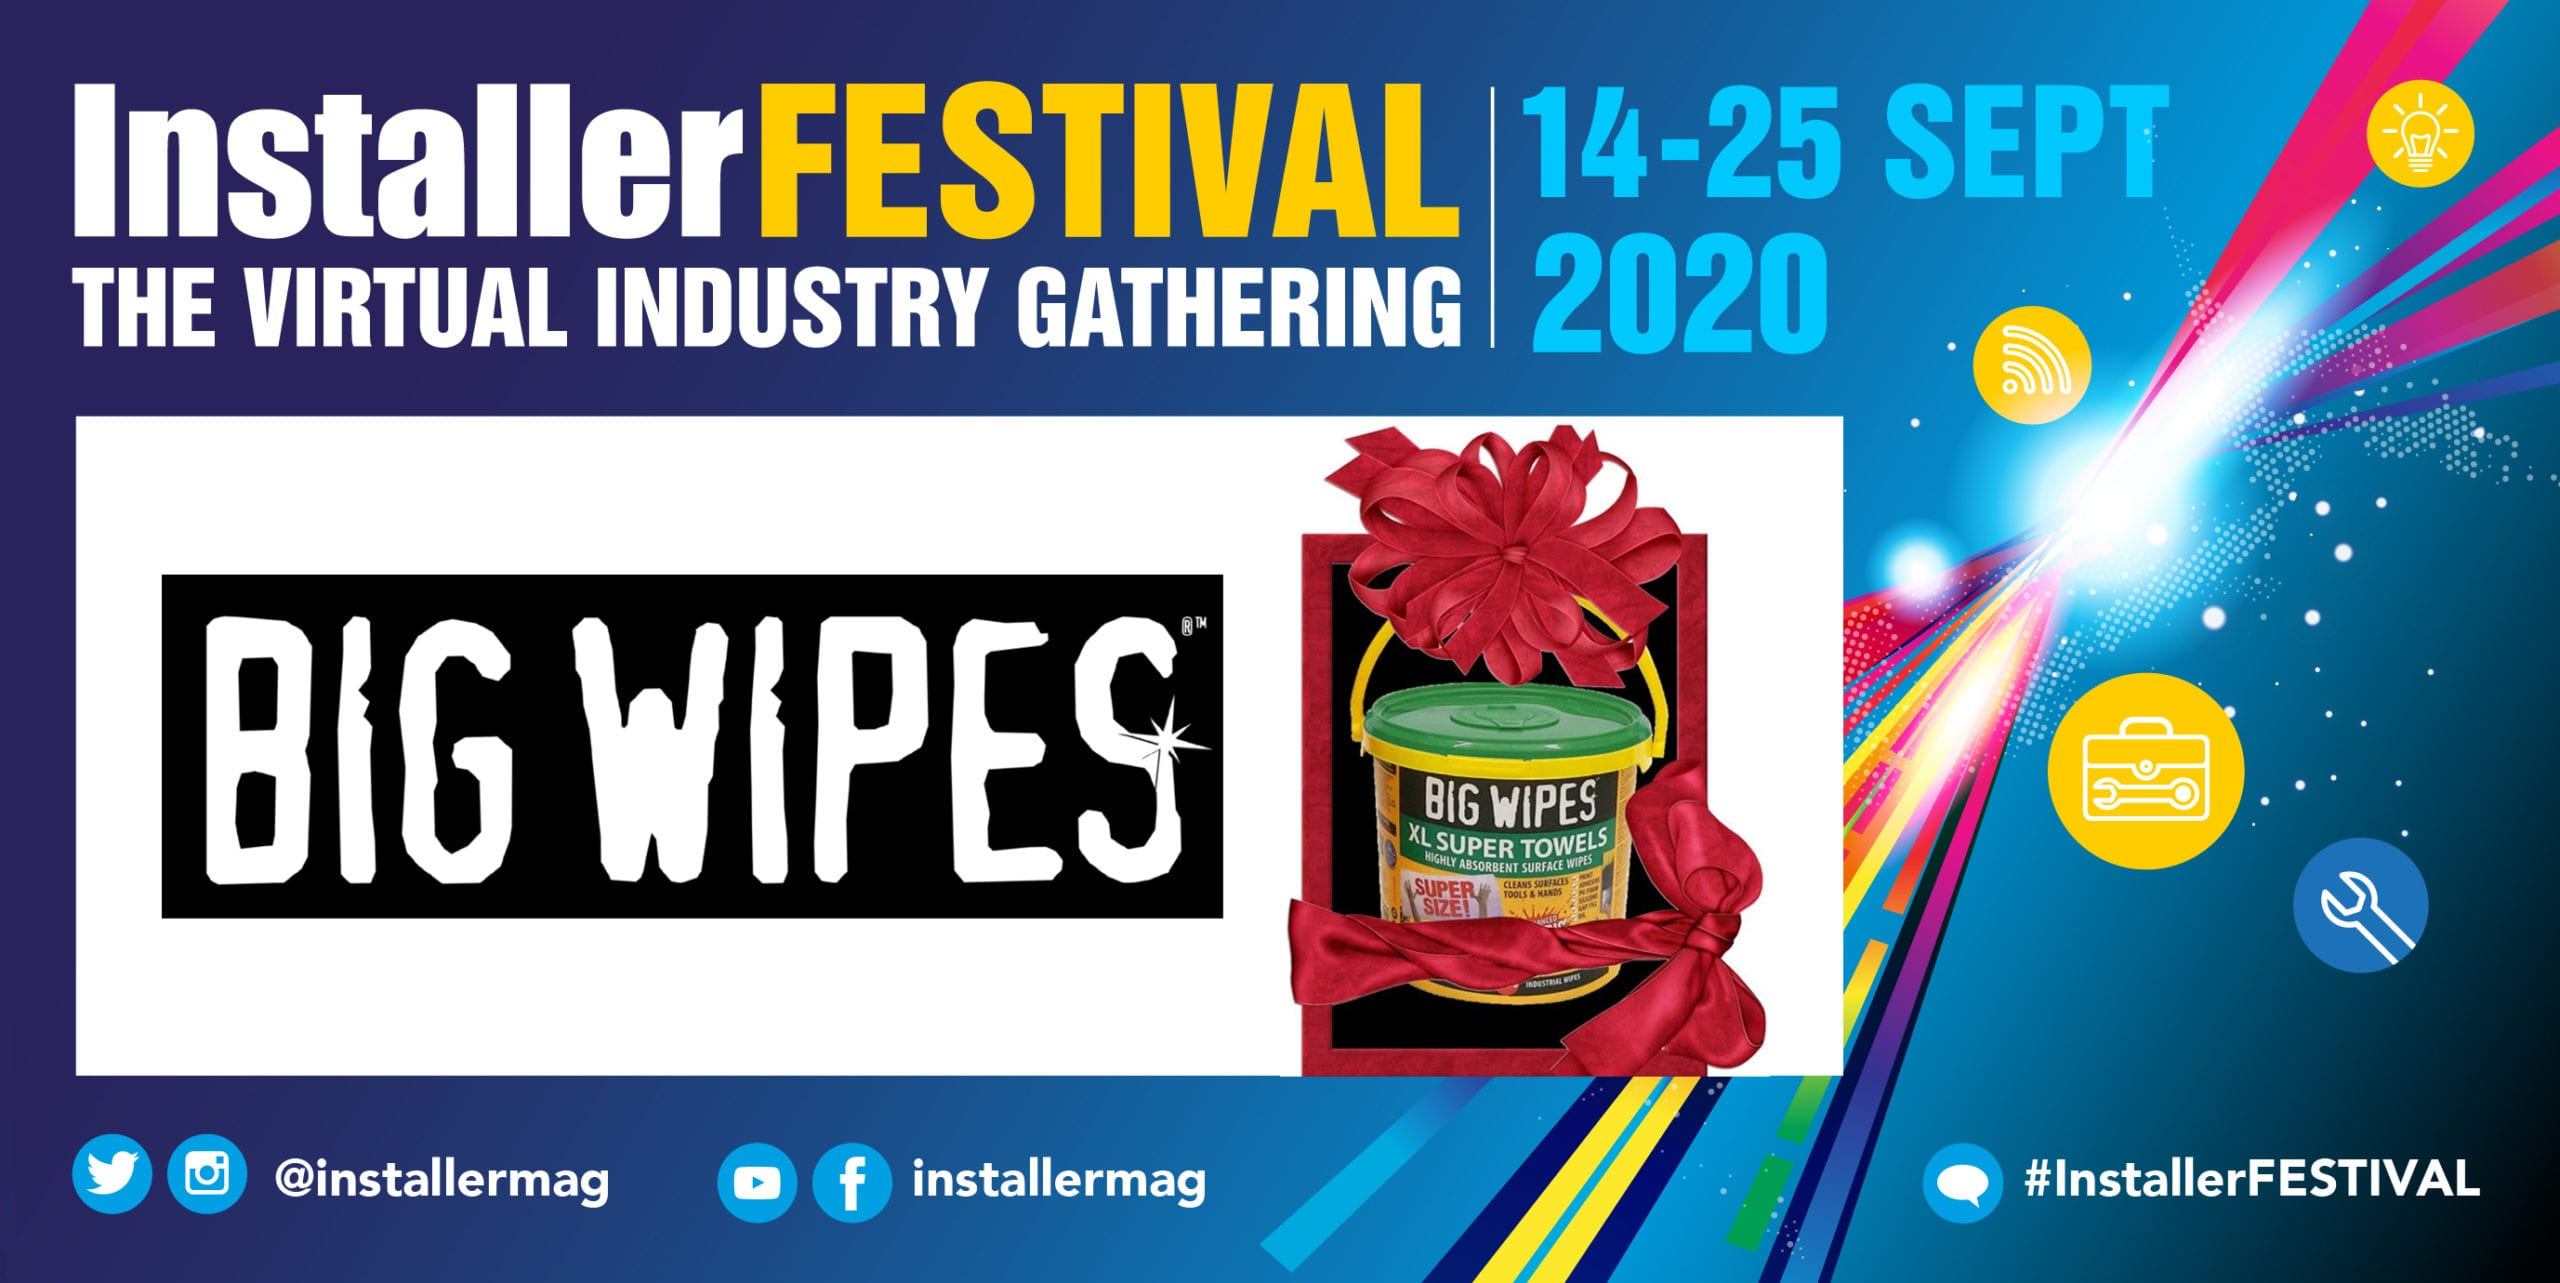 Popular - Win top prizes with Big Wipes at #InstallerFESTIVAL